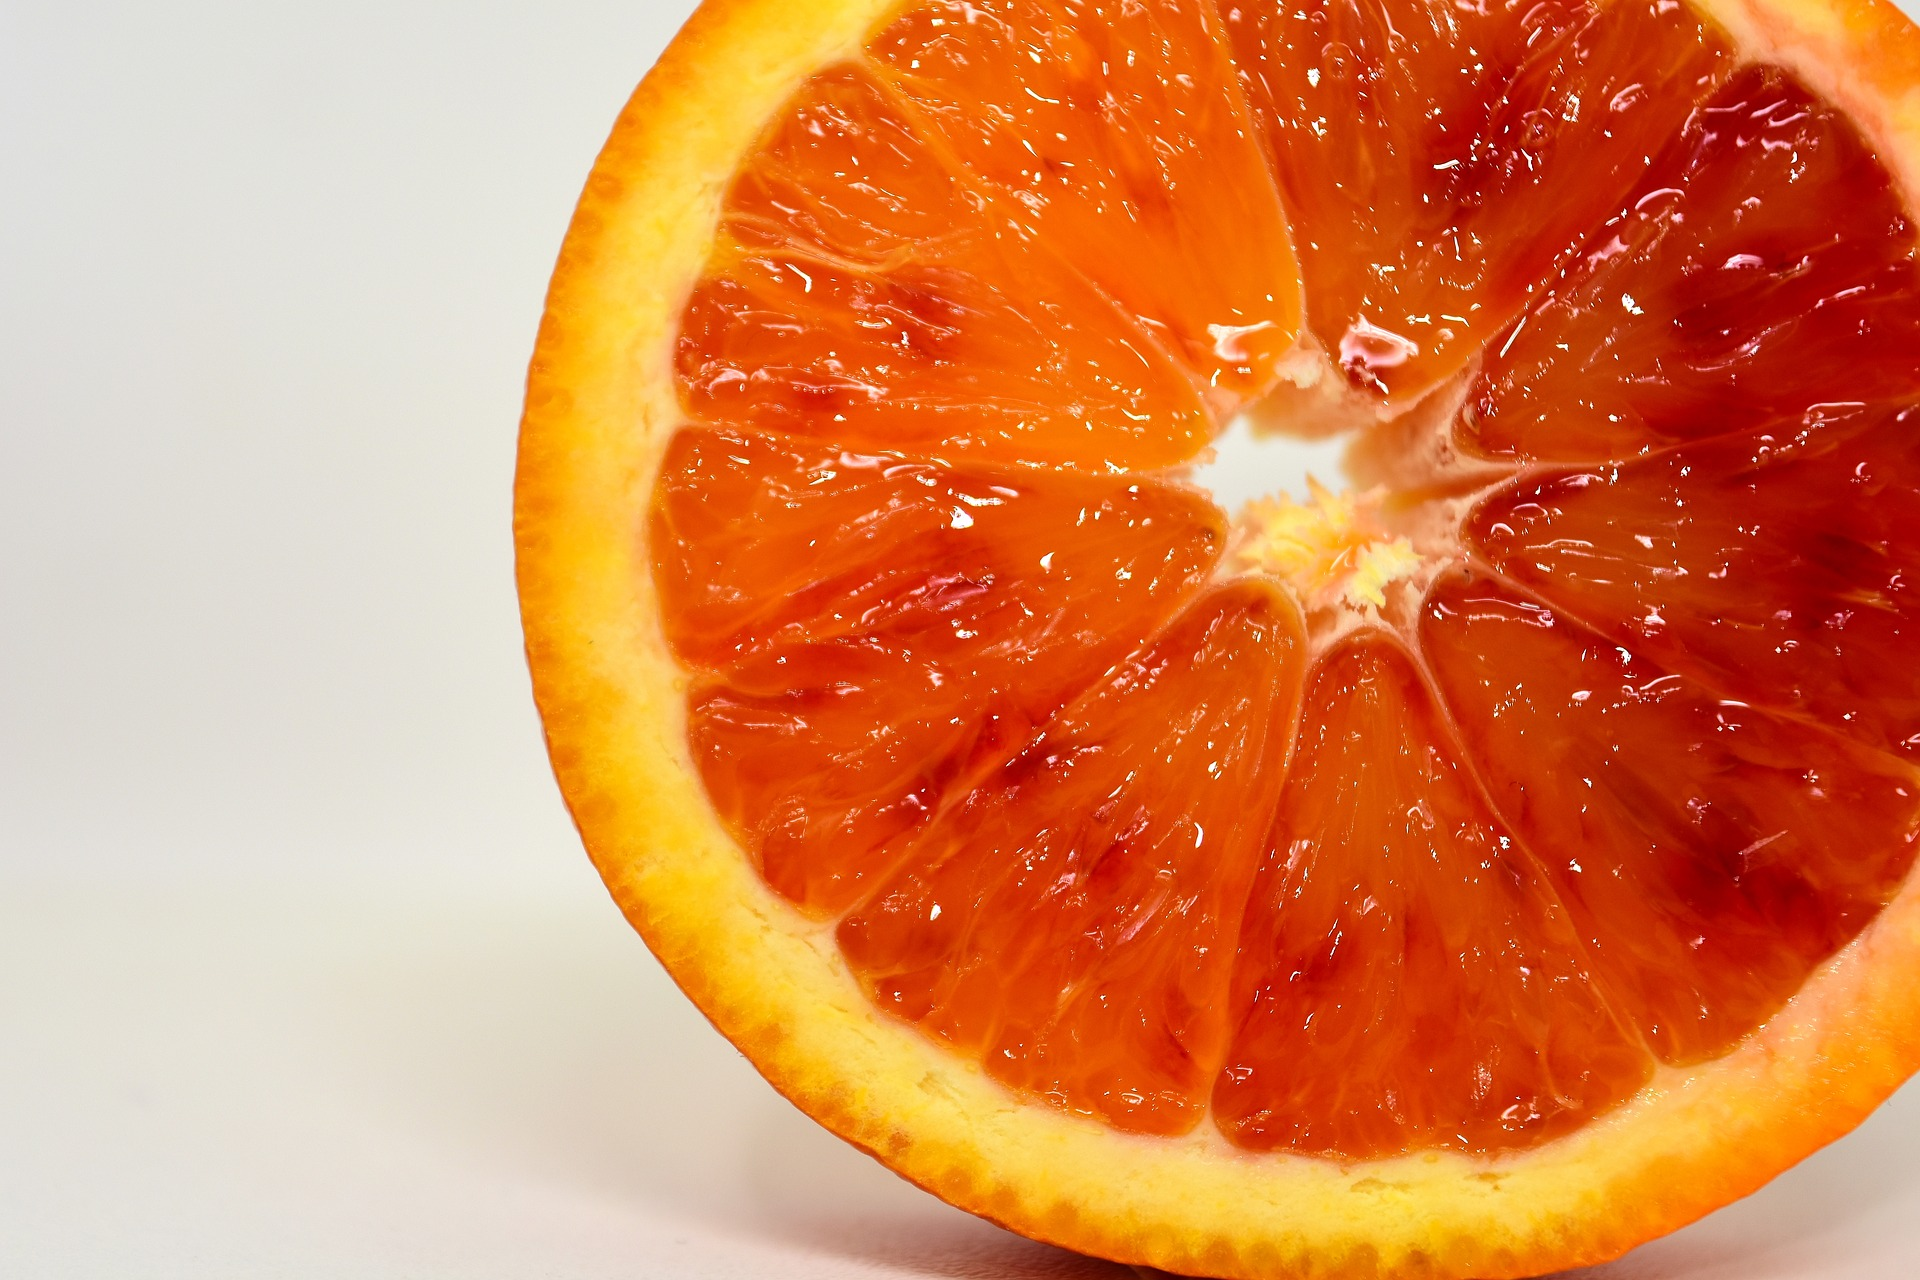 blood-orange-3299262_1920.jpg